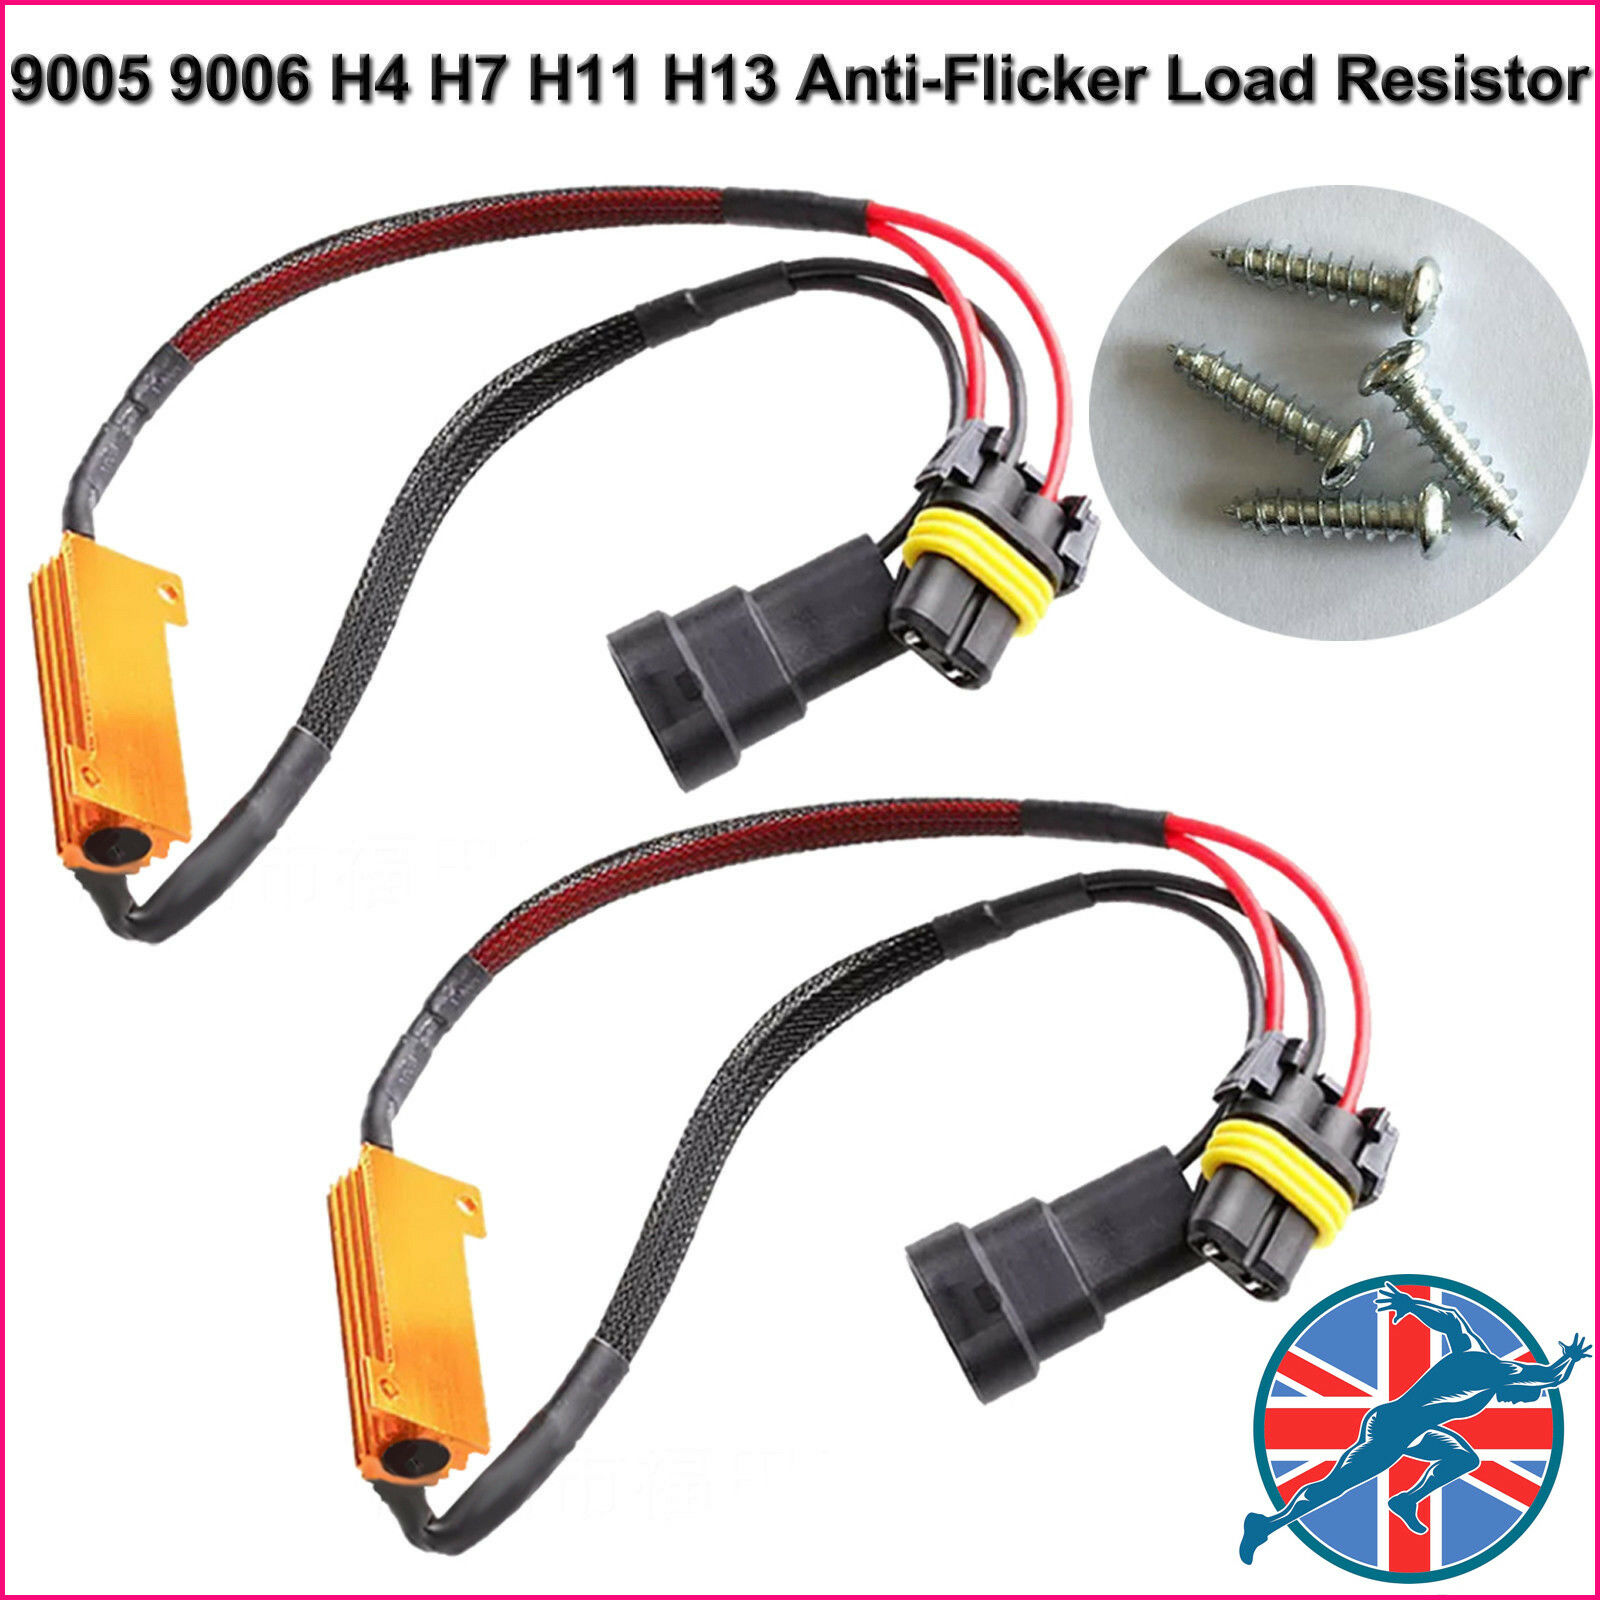 2pc H4 H7 H11 9005 9006 Led Hid Light Canbus Load Resistor Canceller 12v Fog Lamp Wiring Warning Decoder Hot 1 Of 6free Shipping See More